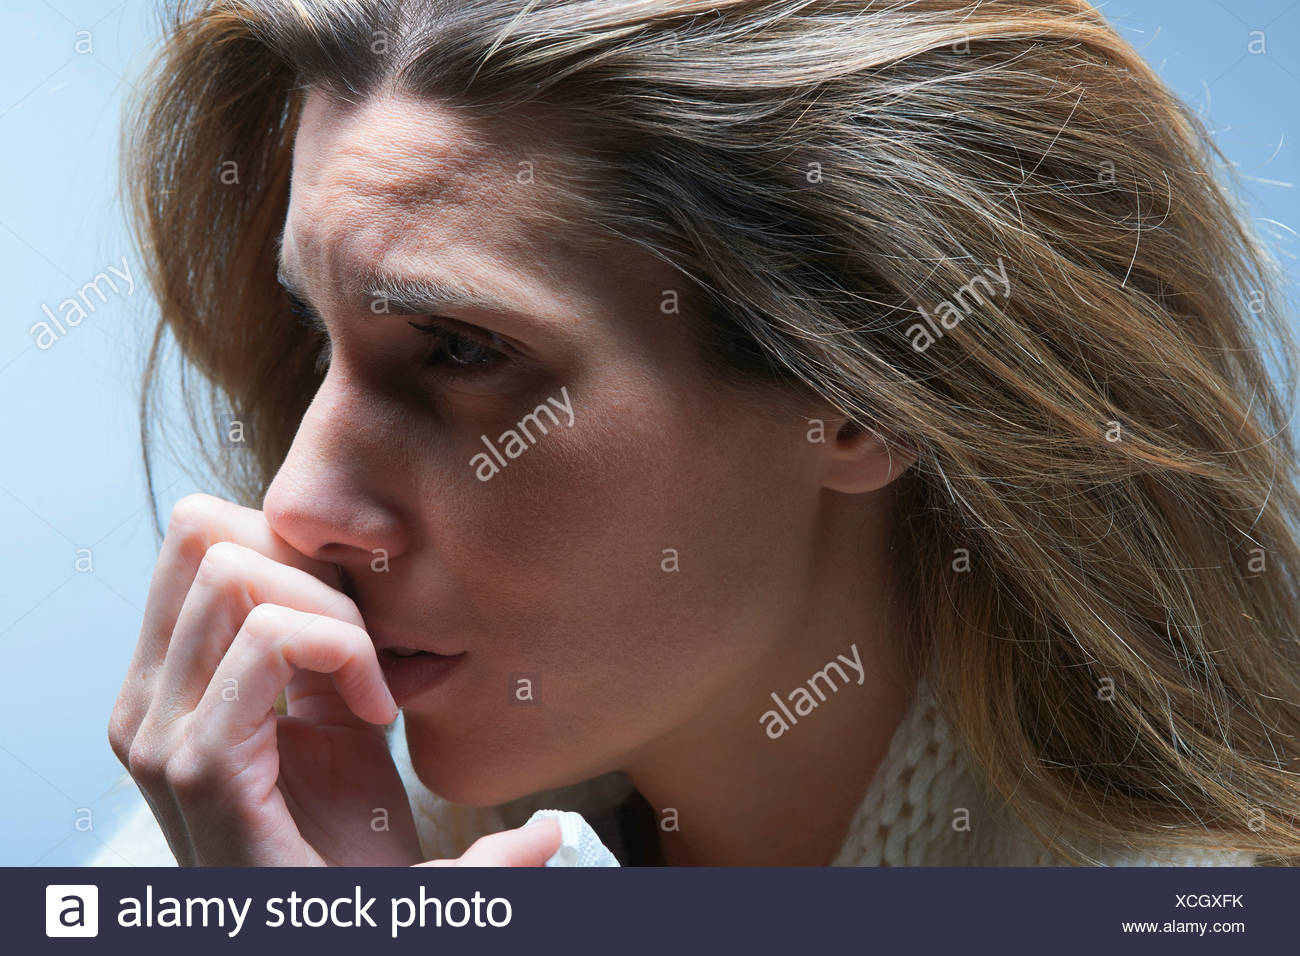 Close up of anxious woman with hand on mouth - Stock Image